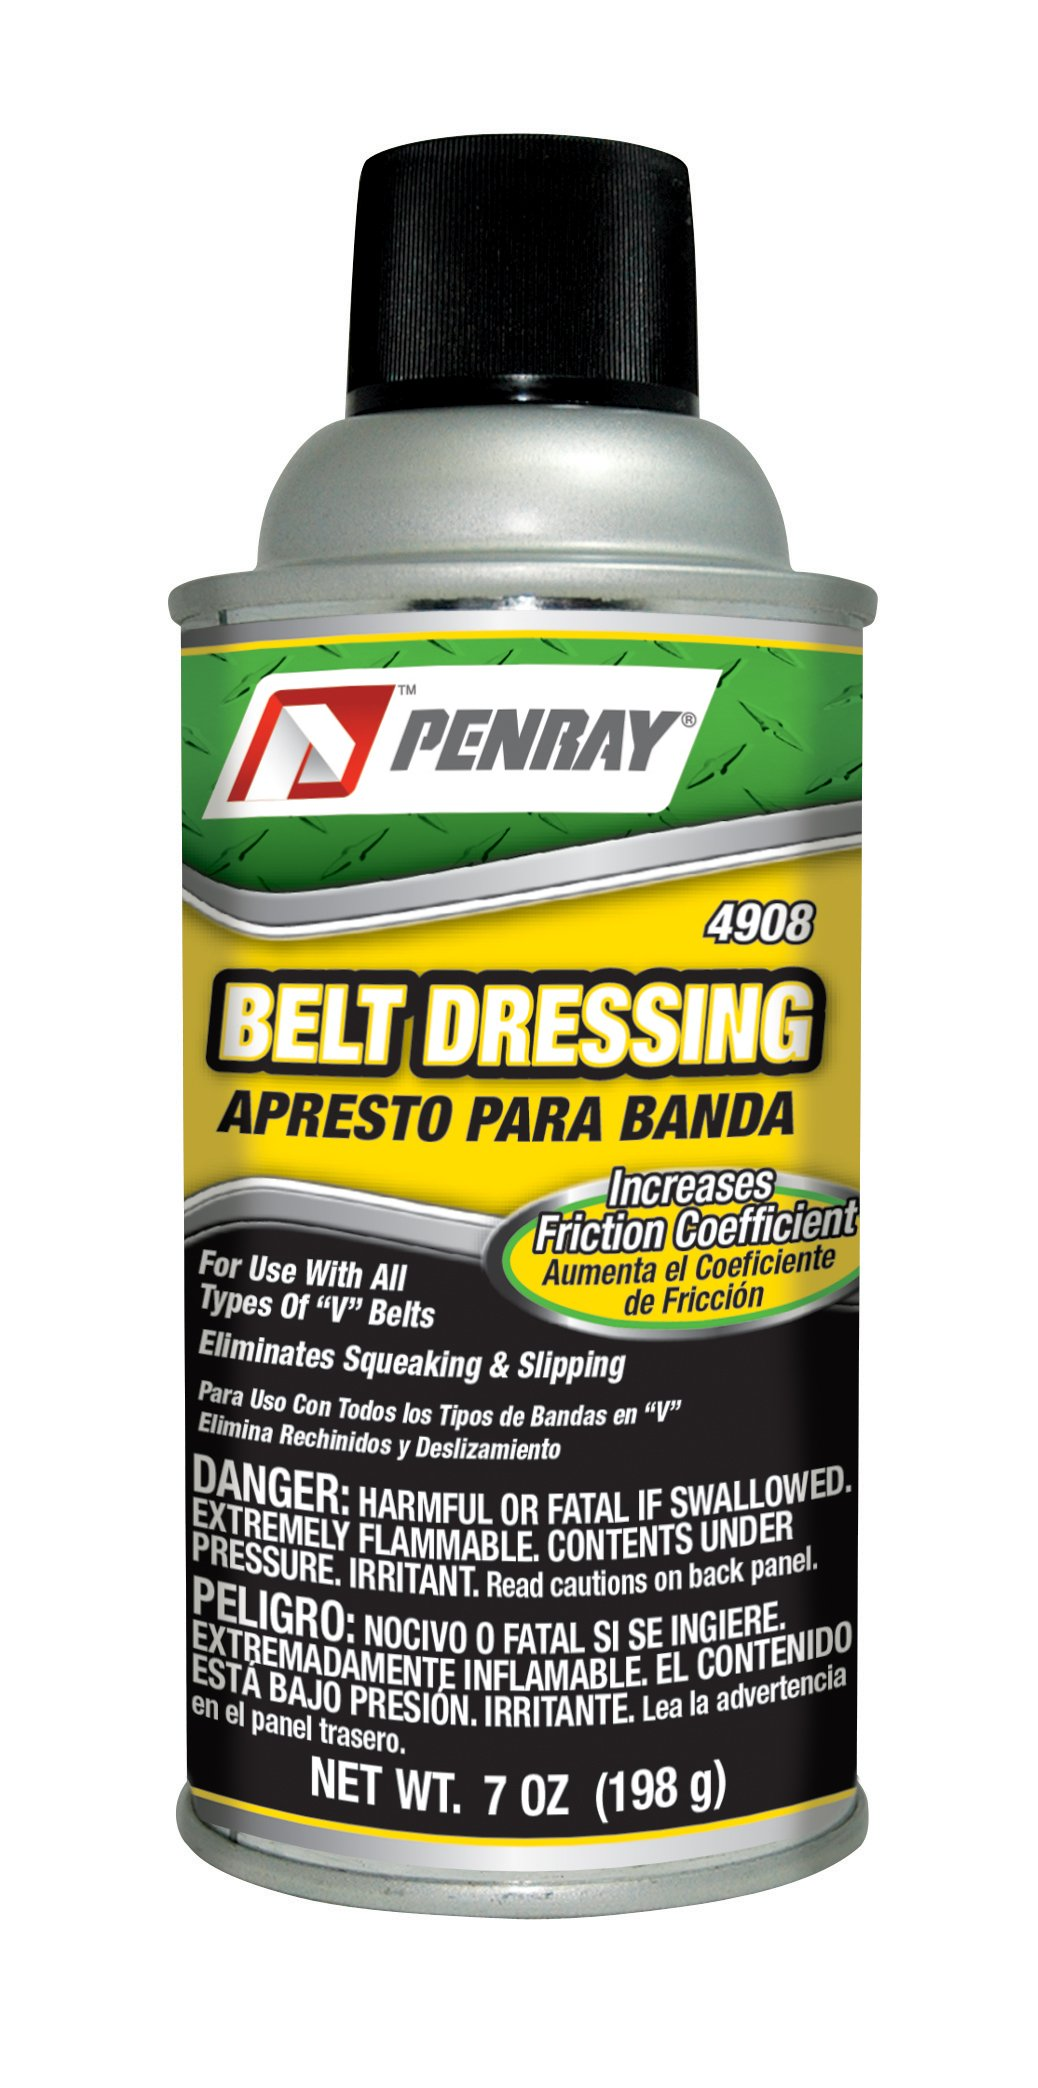 Penray 4908 Belt Dressing - 7-Ounce Aerosol Can by The Penray Companies